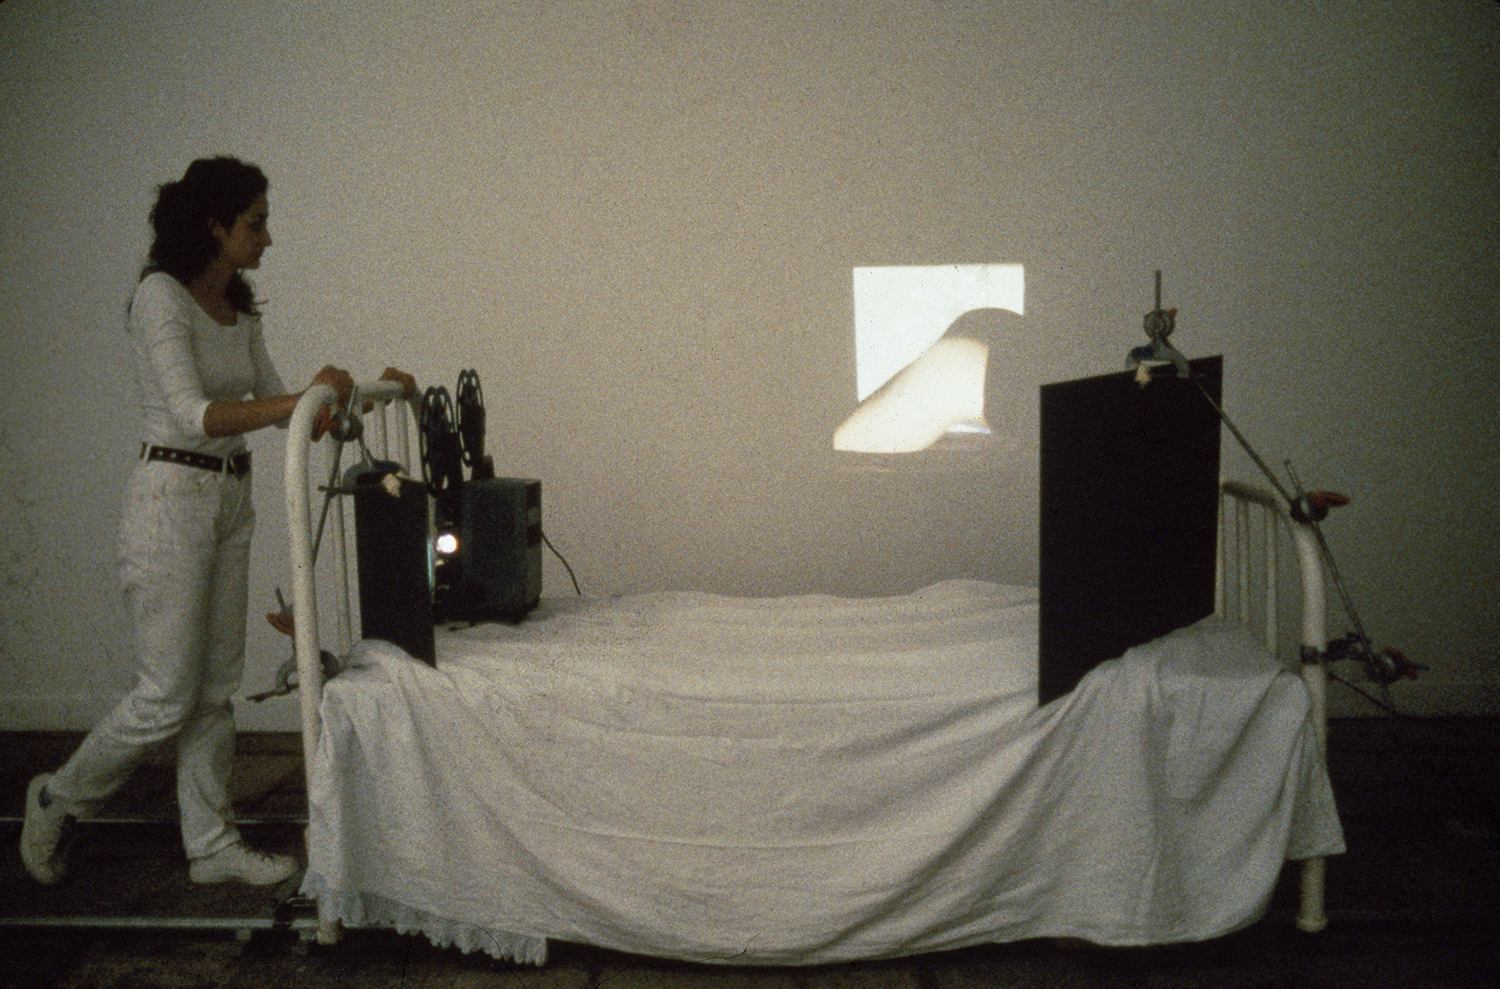 Eulalia Valldosera,  Embenatges - Bandages,  1992    16 mm film projector, film with soundtrack, 18'; individual hospital type bed; 2 mirrors; rails and dolly for traveling shots      Performance